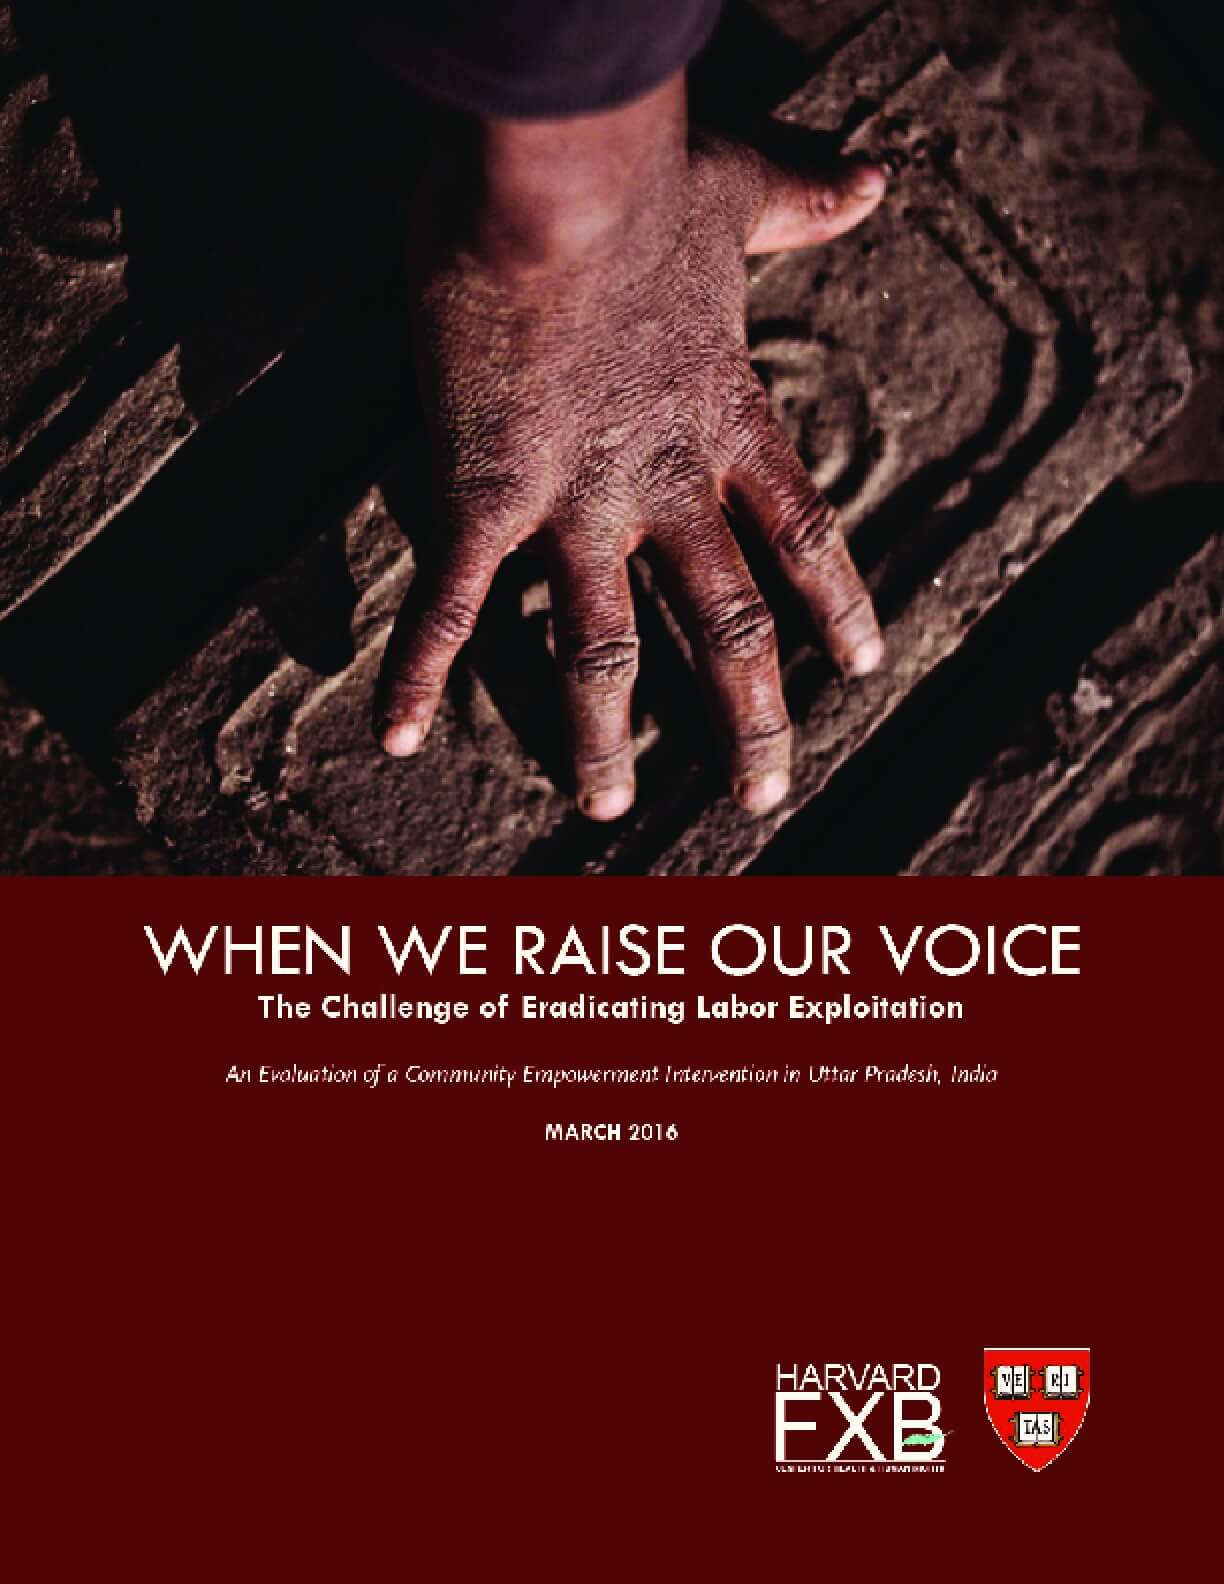 When We Raise Our Voice: The Challenge of Eradicating Labor Exploitation, An Evaluation of a Community Empowerment Intervention in  Uttar Pradesh, India